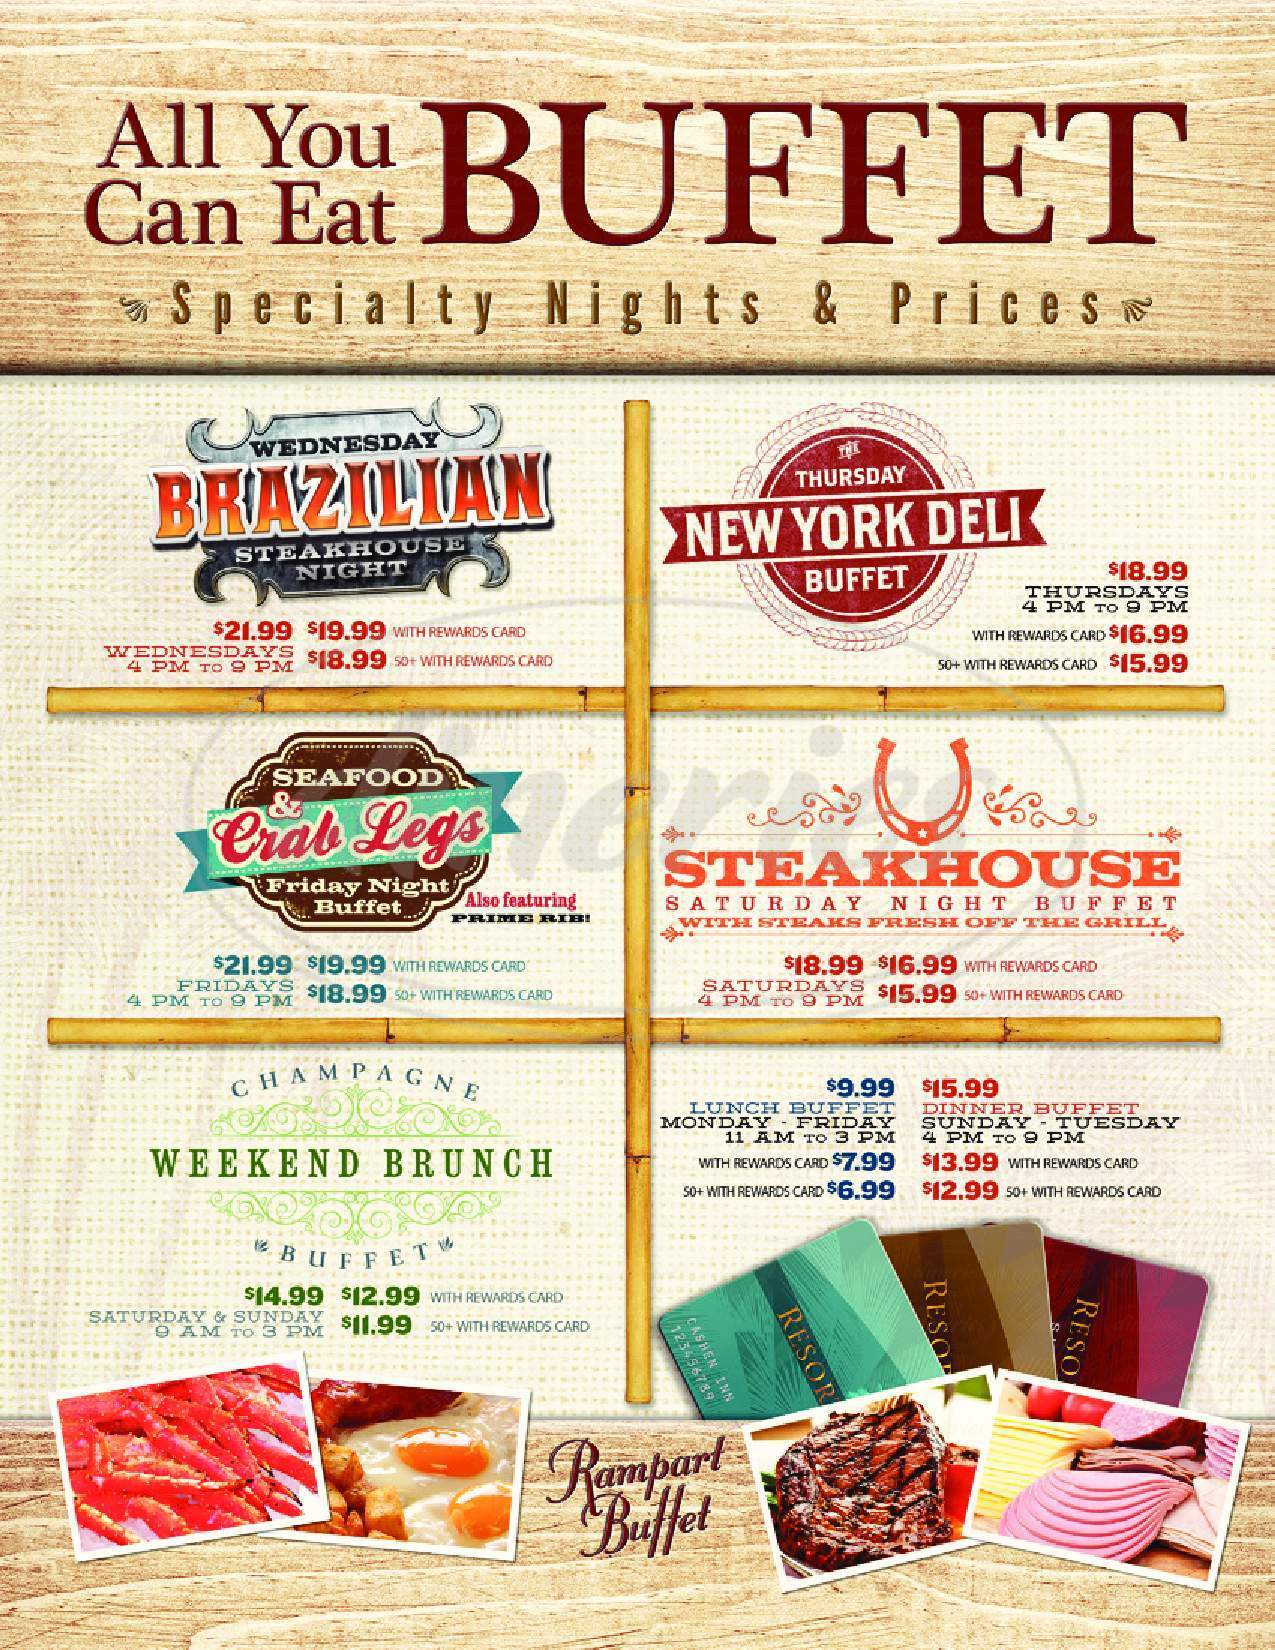 menu for Rampart Buffet